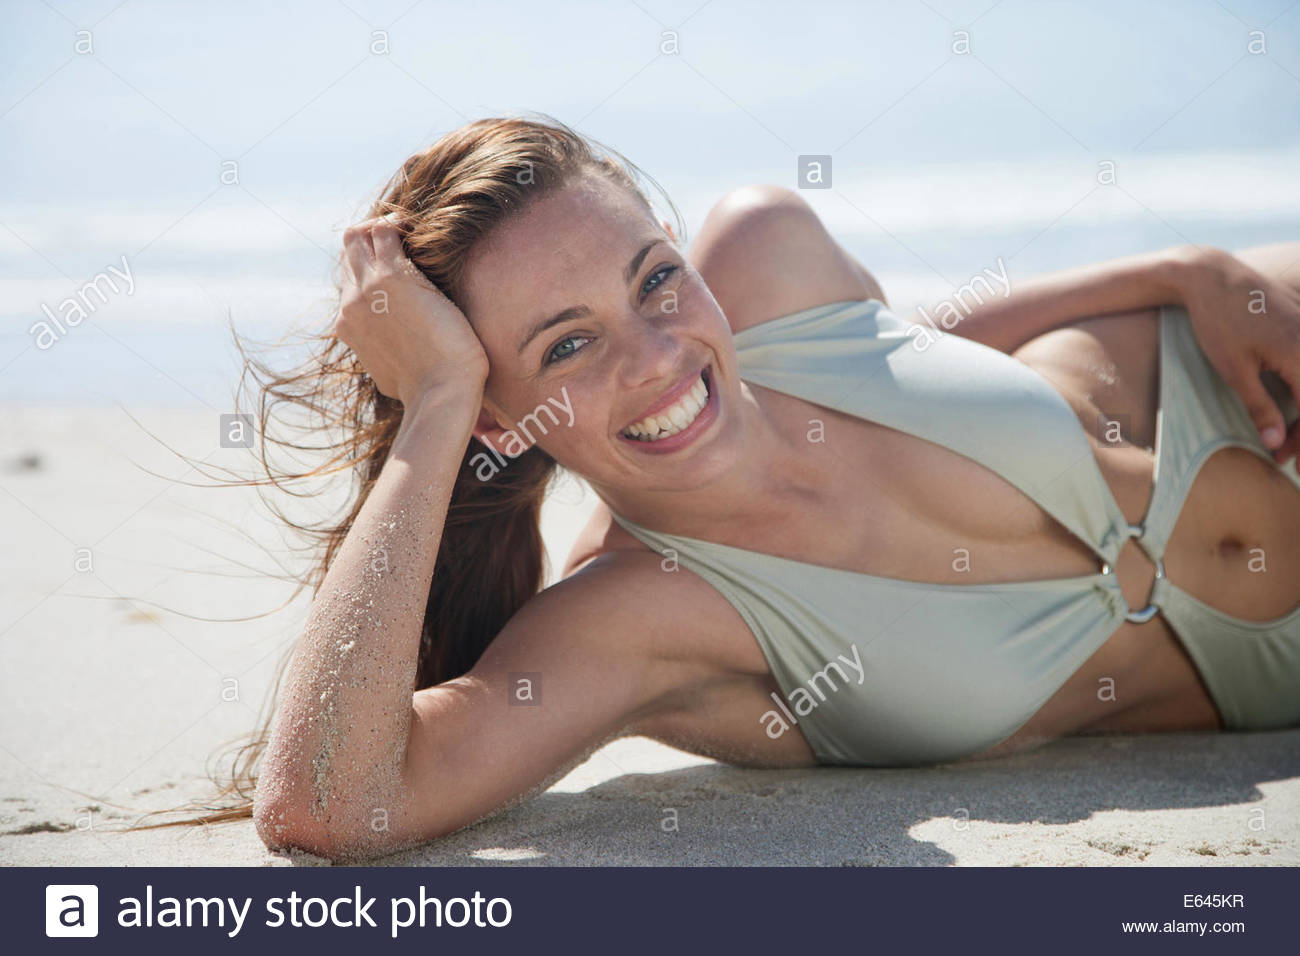 Woman in bathing suit laying on beach - Stock Image